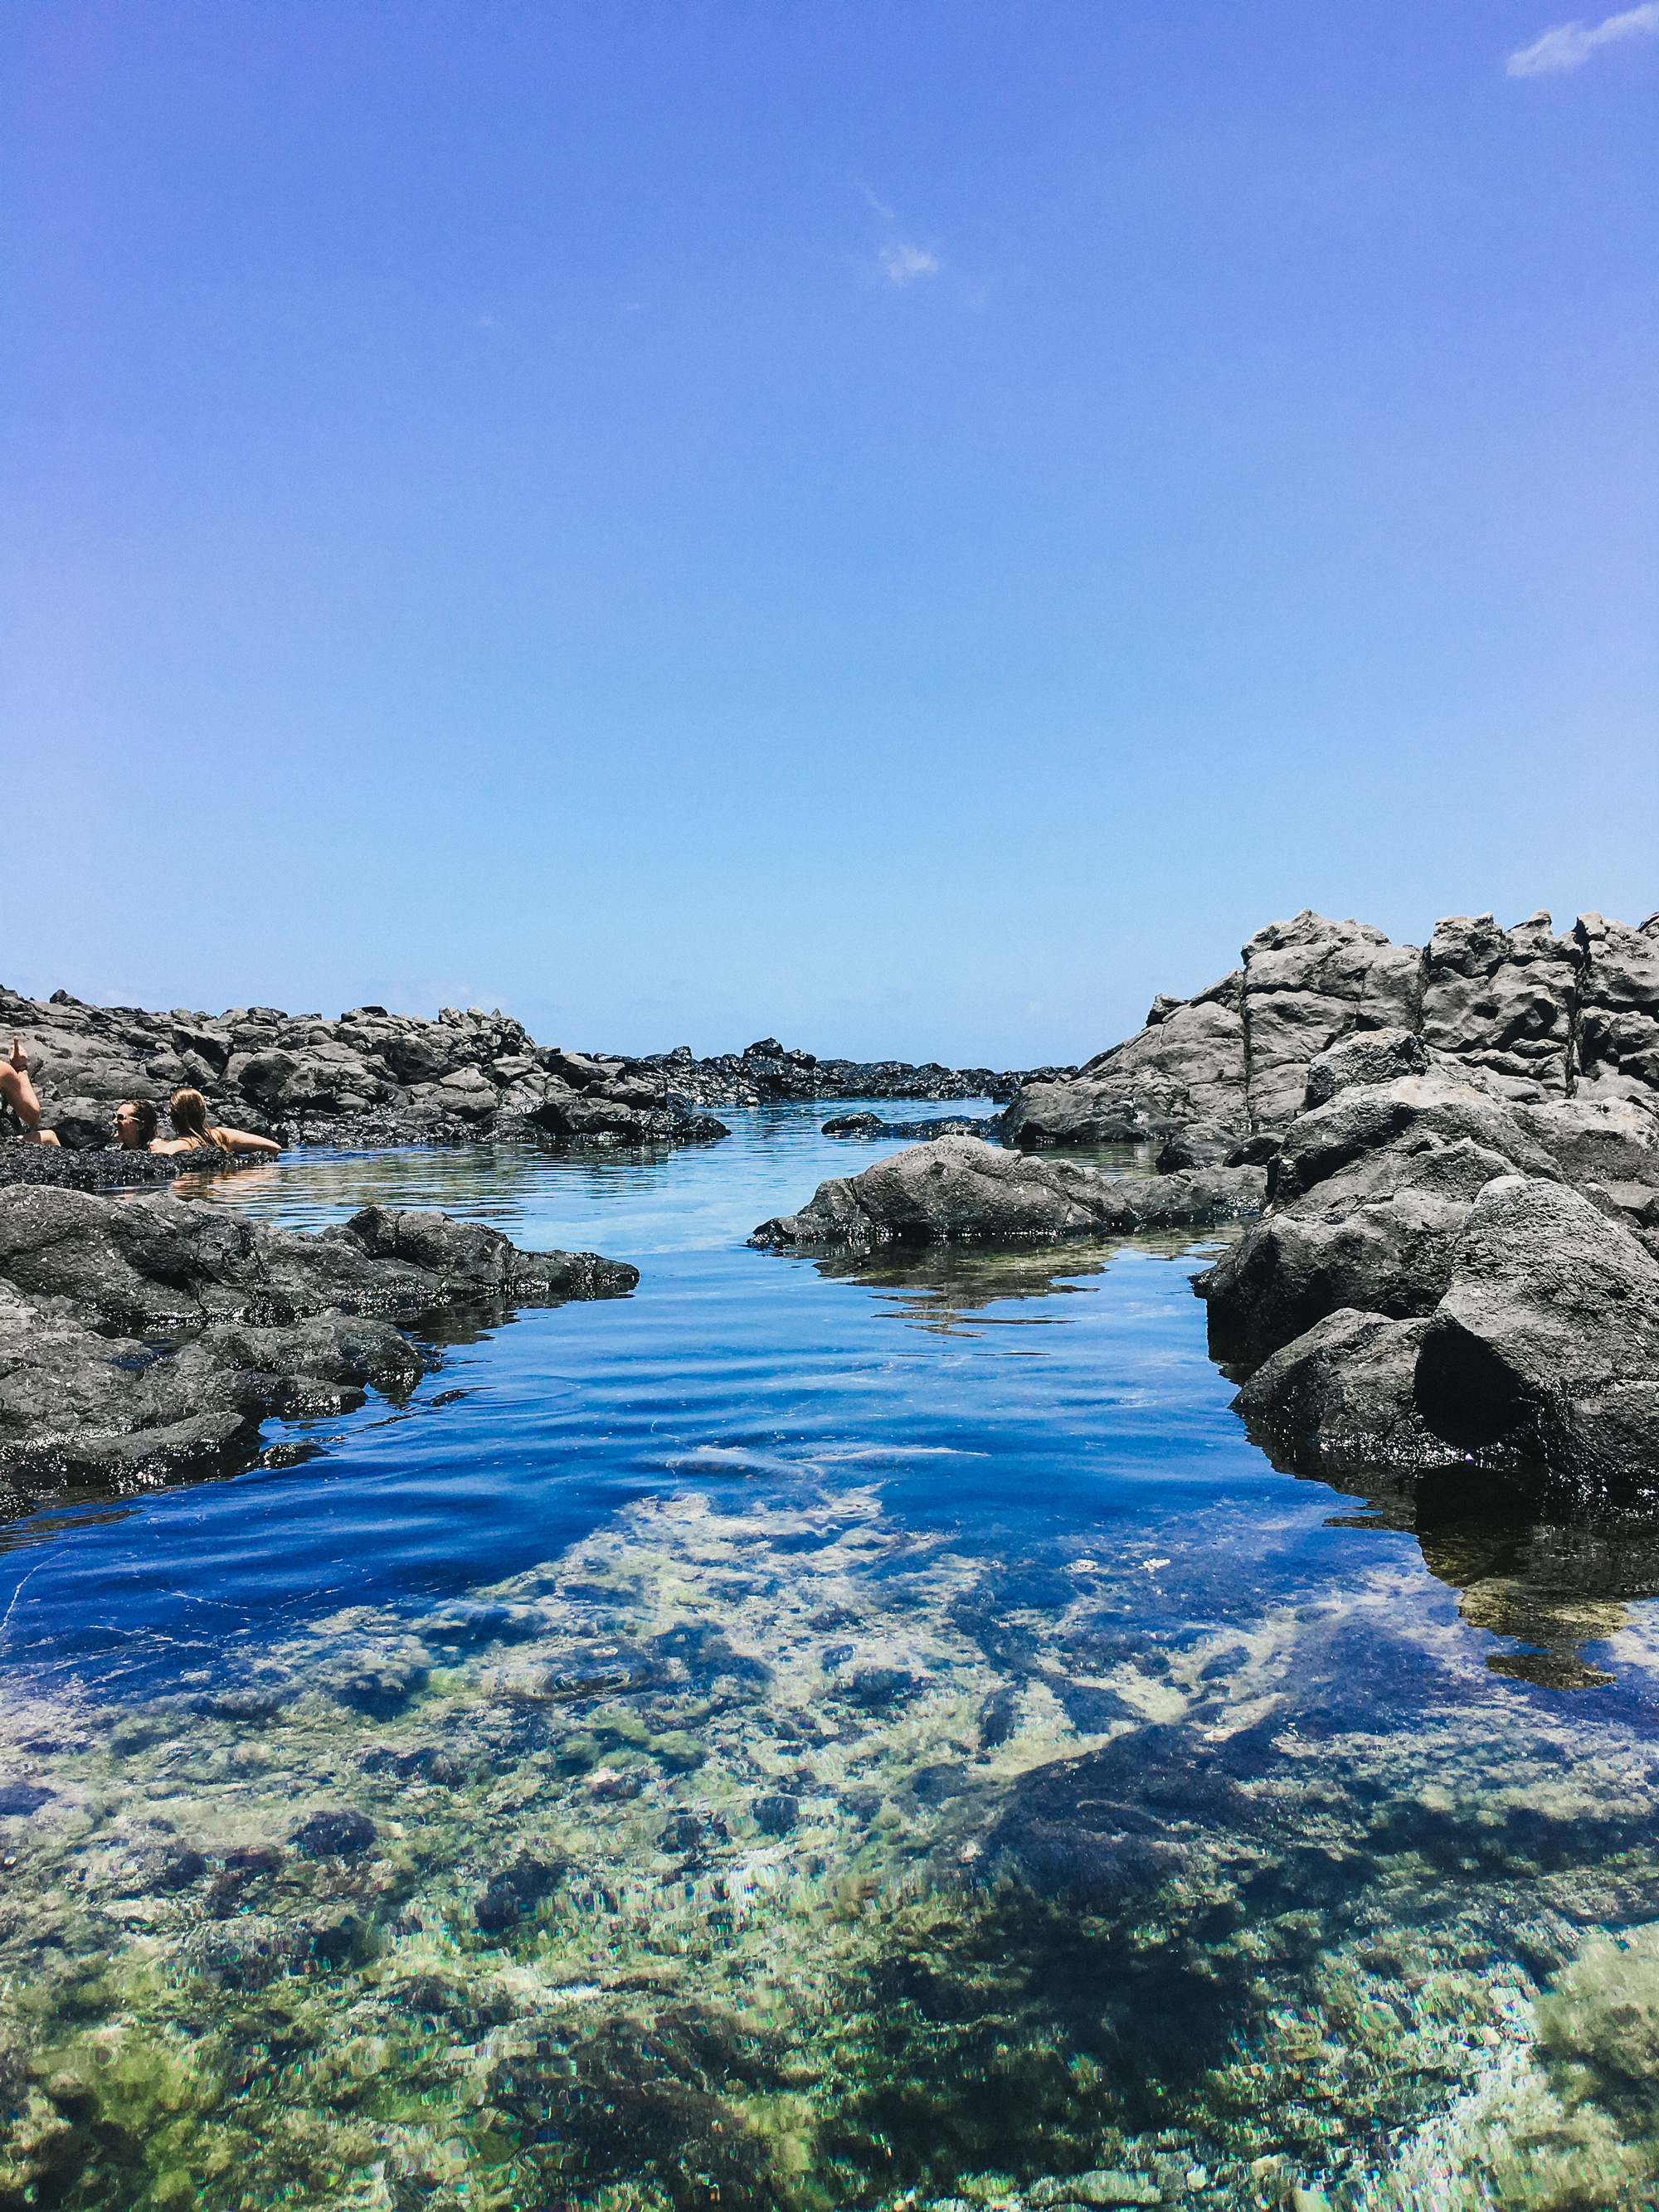 Makapu'u Tidal Pools are a hidden secret and well worth the climb down